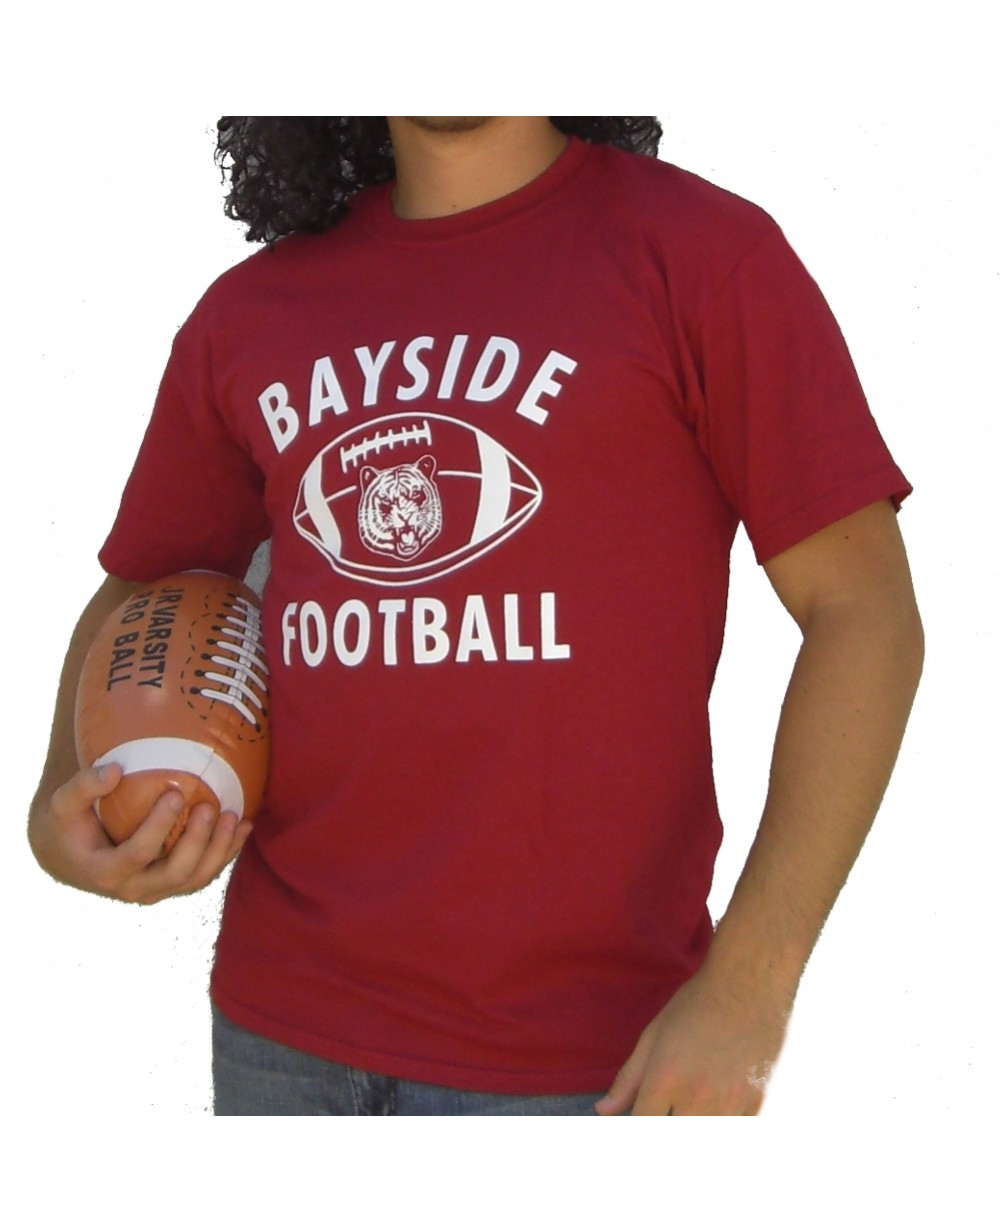 a4f86905c1df More Views. A.C. Slater  6 Bayside Football Jersey T-Shirt